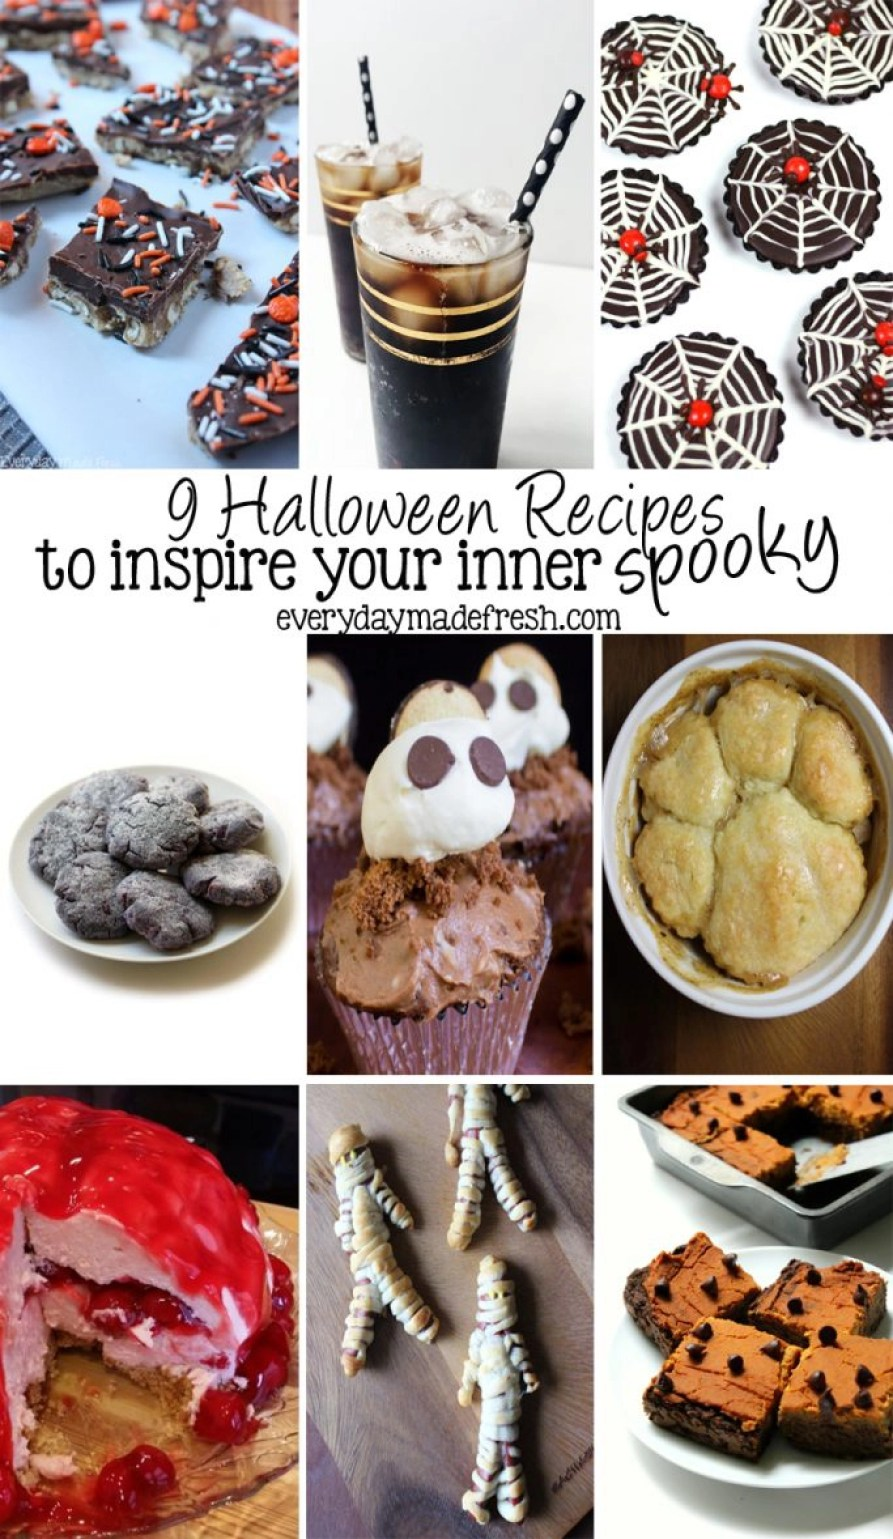 These 9 Halloween Recipes to Inspire Your Inner Spooky are fun and creative! Perfect to serve at your next Halloween party or to enjoy just because. | EverydayMadeFresh.com